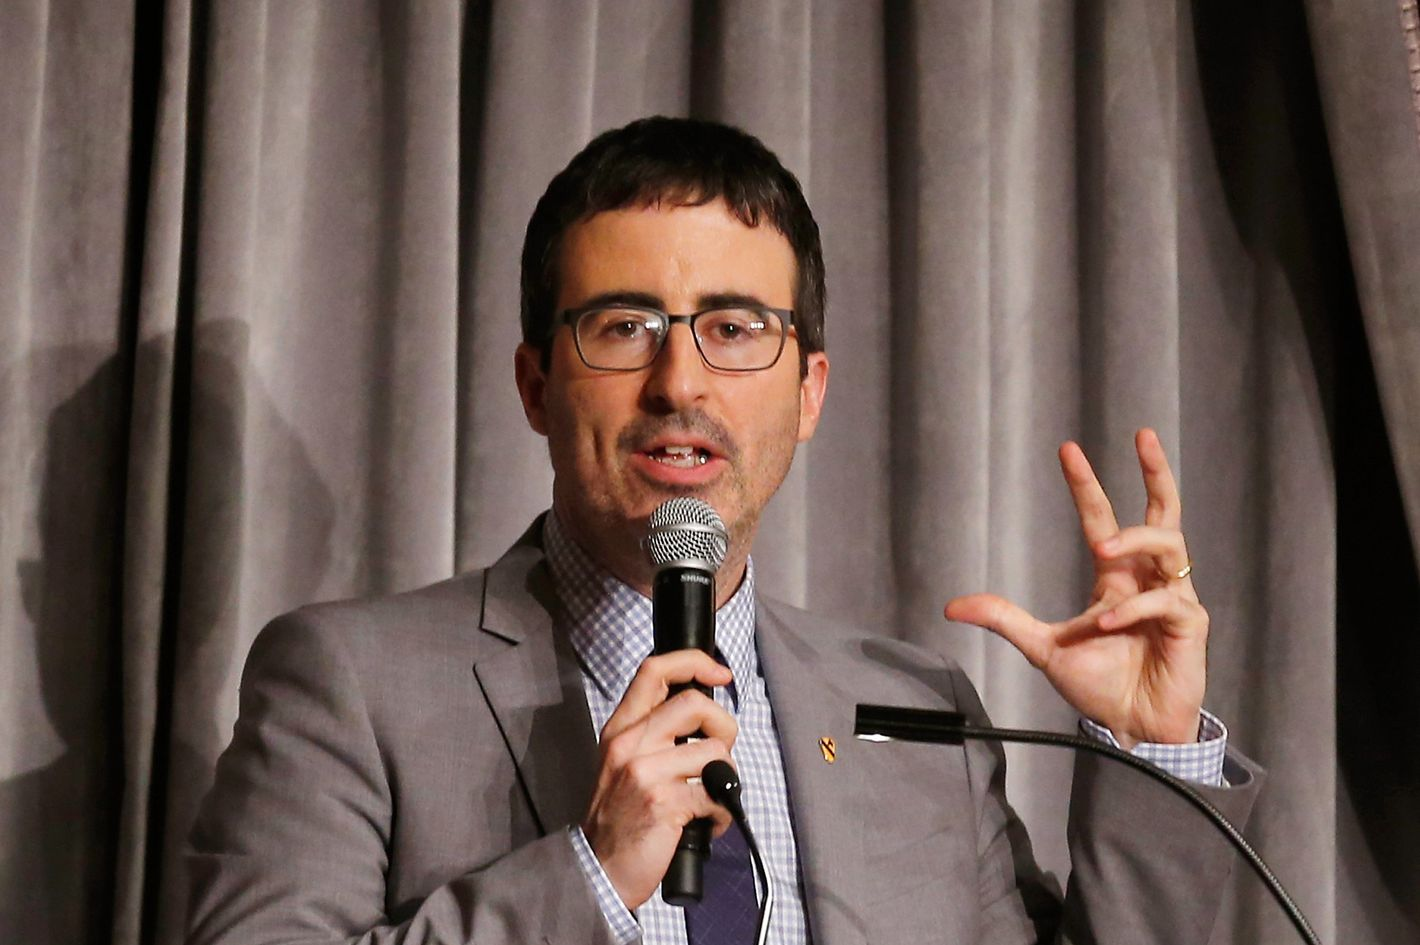 John Oliver speaks at the Museum Of The Moving Image Honors Richard Plepler & Charlie Rose at Saint Regis Hotel on June 11, 2014 in New York City.